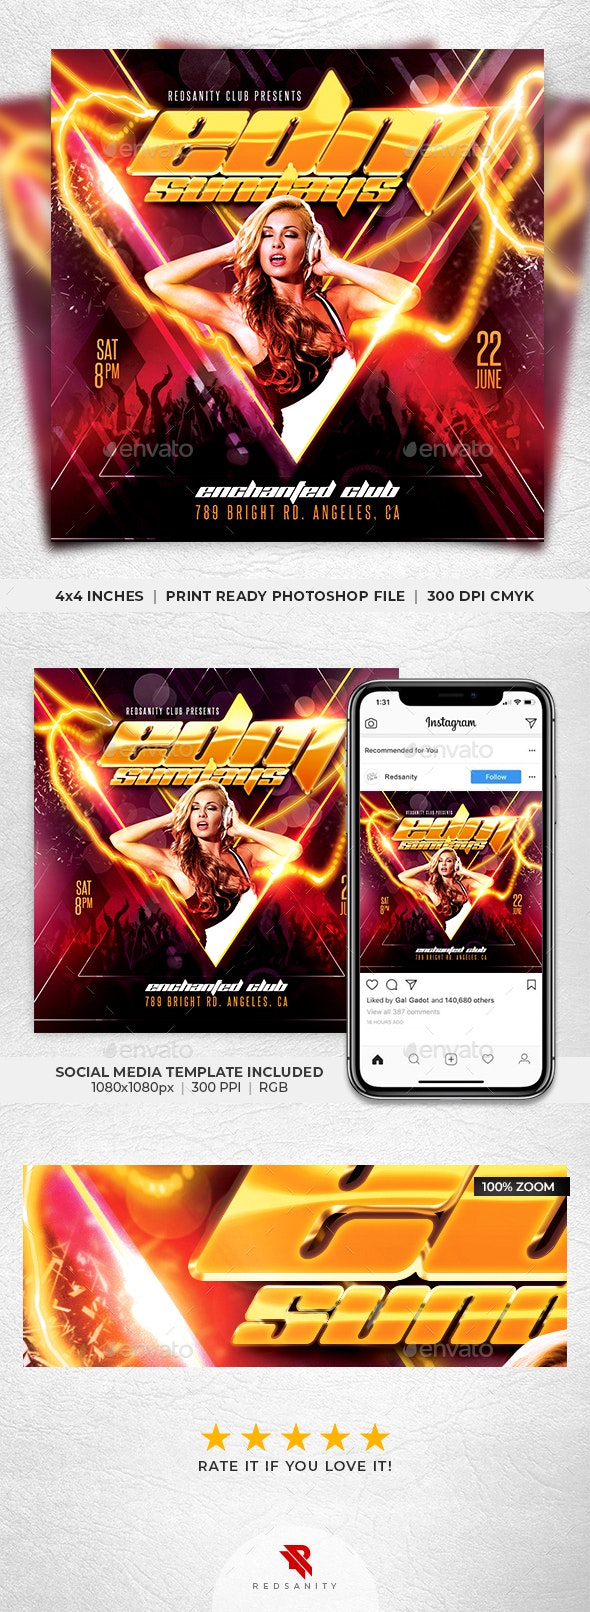 Electro Dance Music Flyer - Clubs & Parties Events